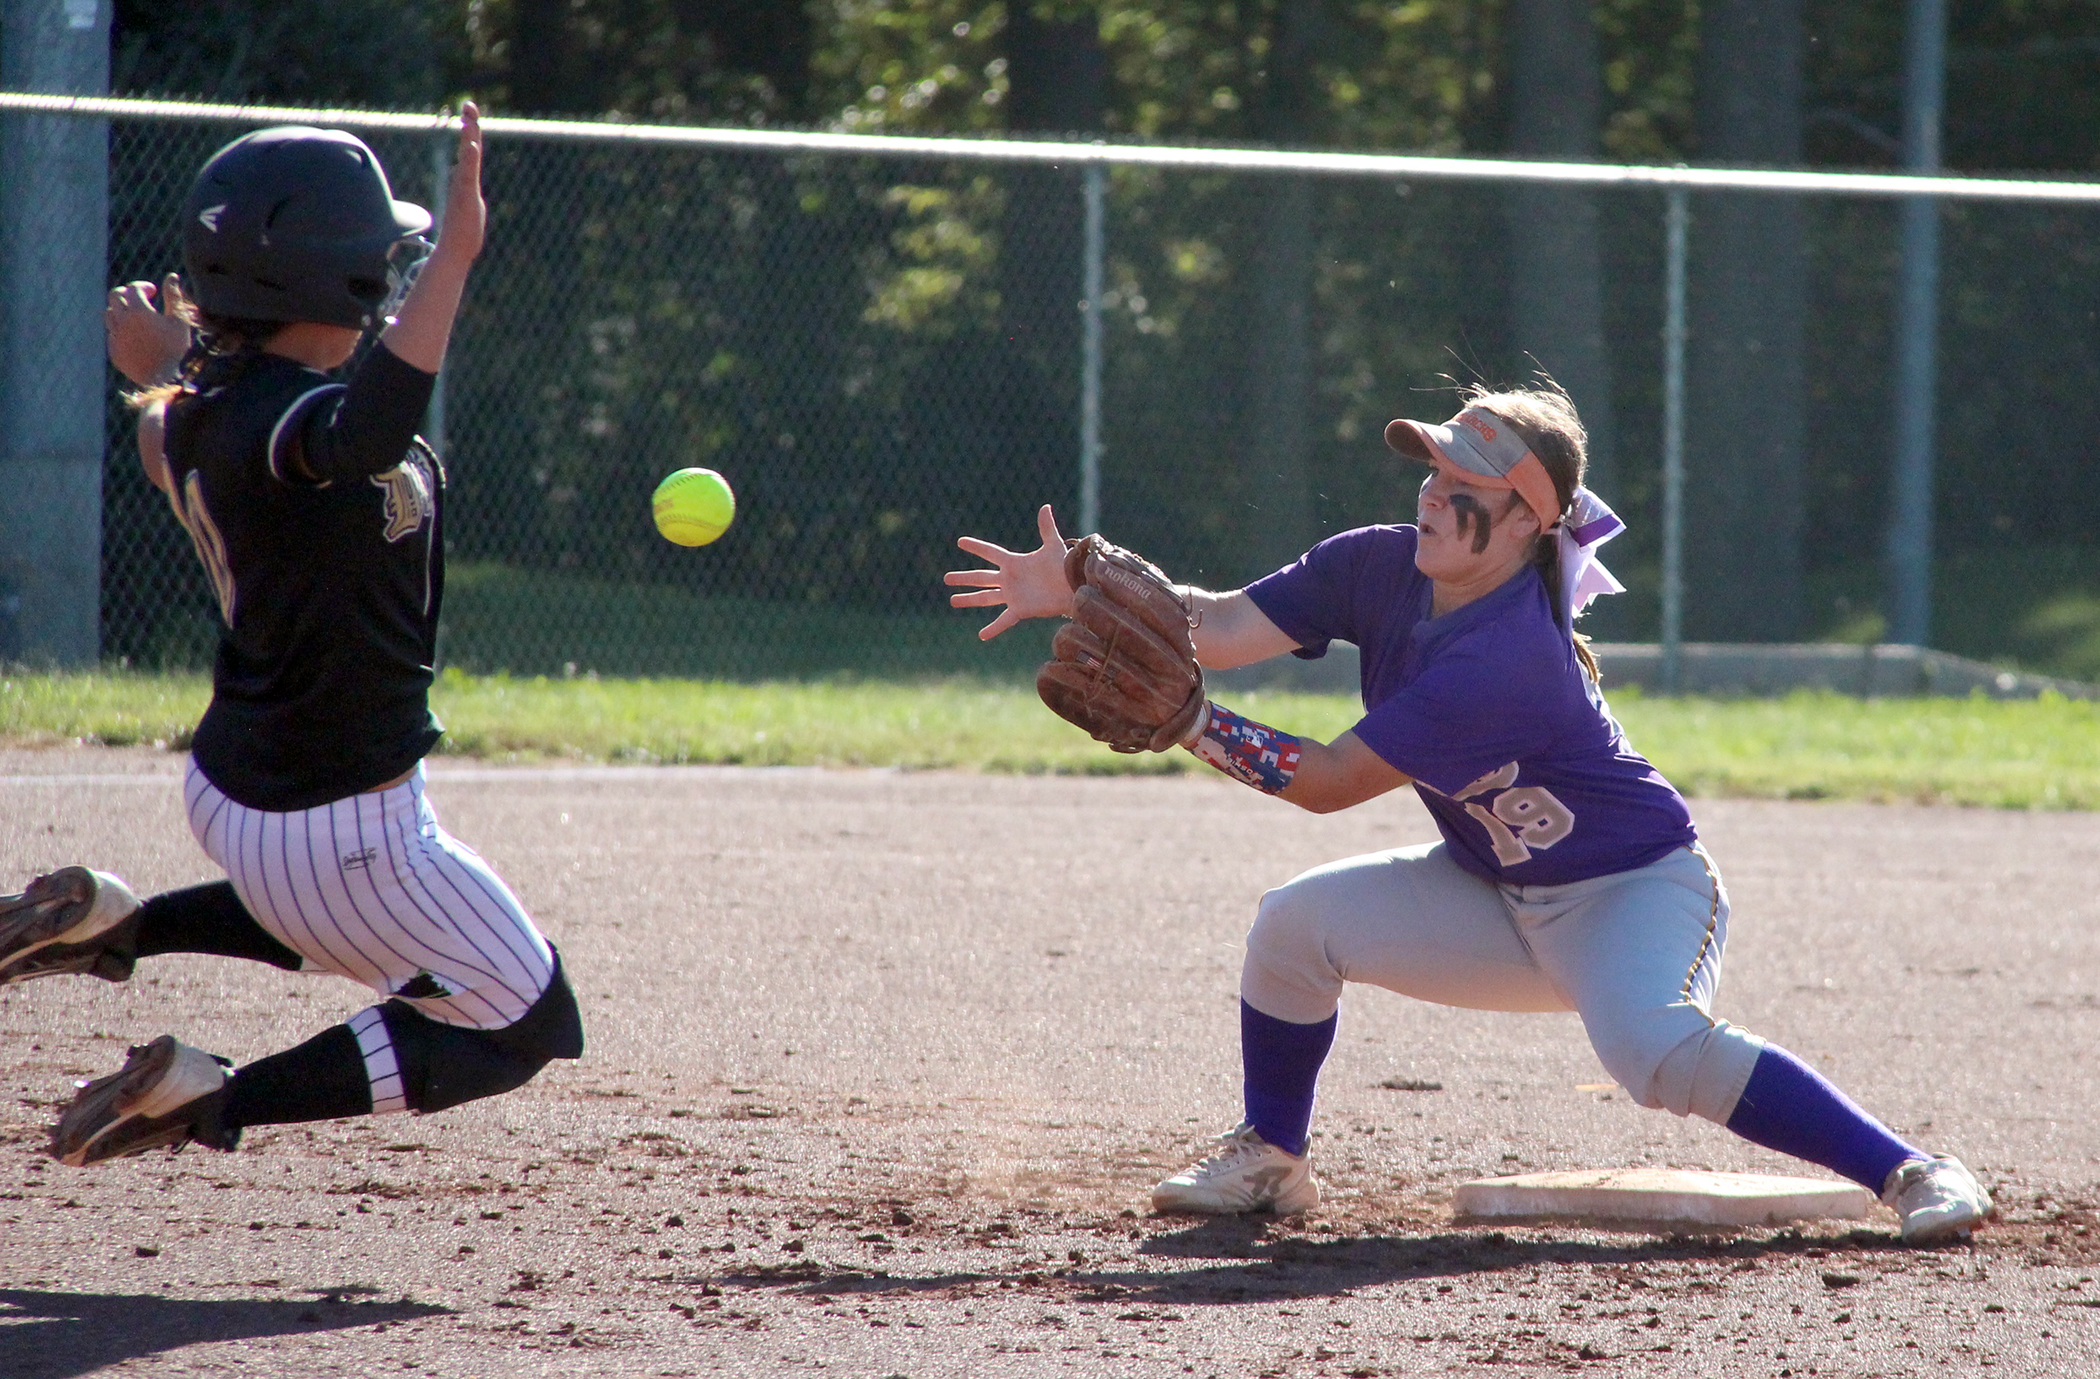 ROSS MARTIN/Citizen photo North Platte shortstop Alley Rickel, left, prepares to take a throw and tag out DeKalb's Kirstian Goddard during a game Monday, Sept. 26 at Dean Park in Dearborn, Mo.